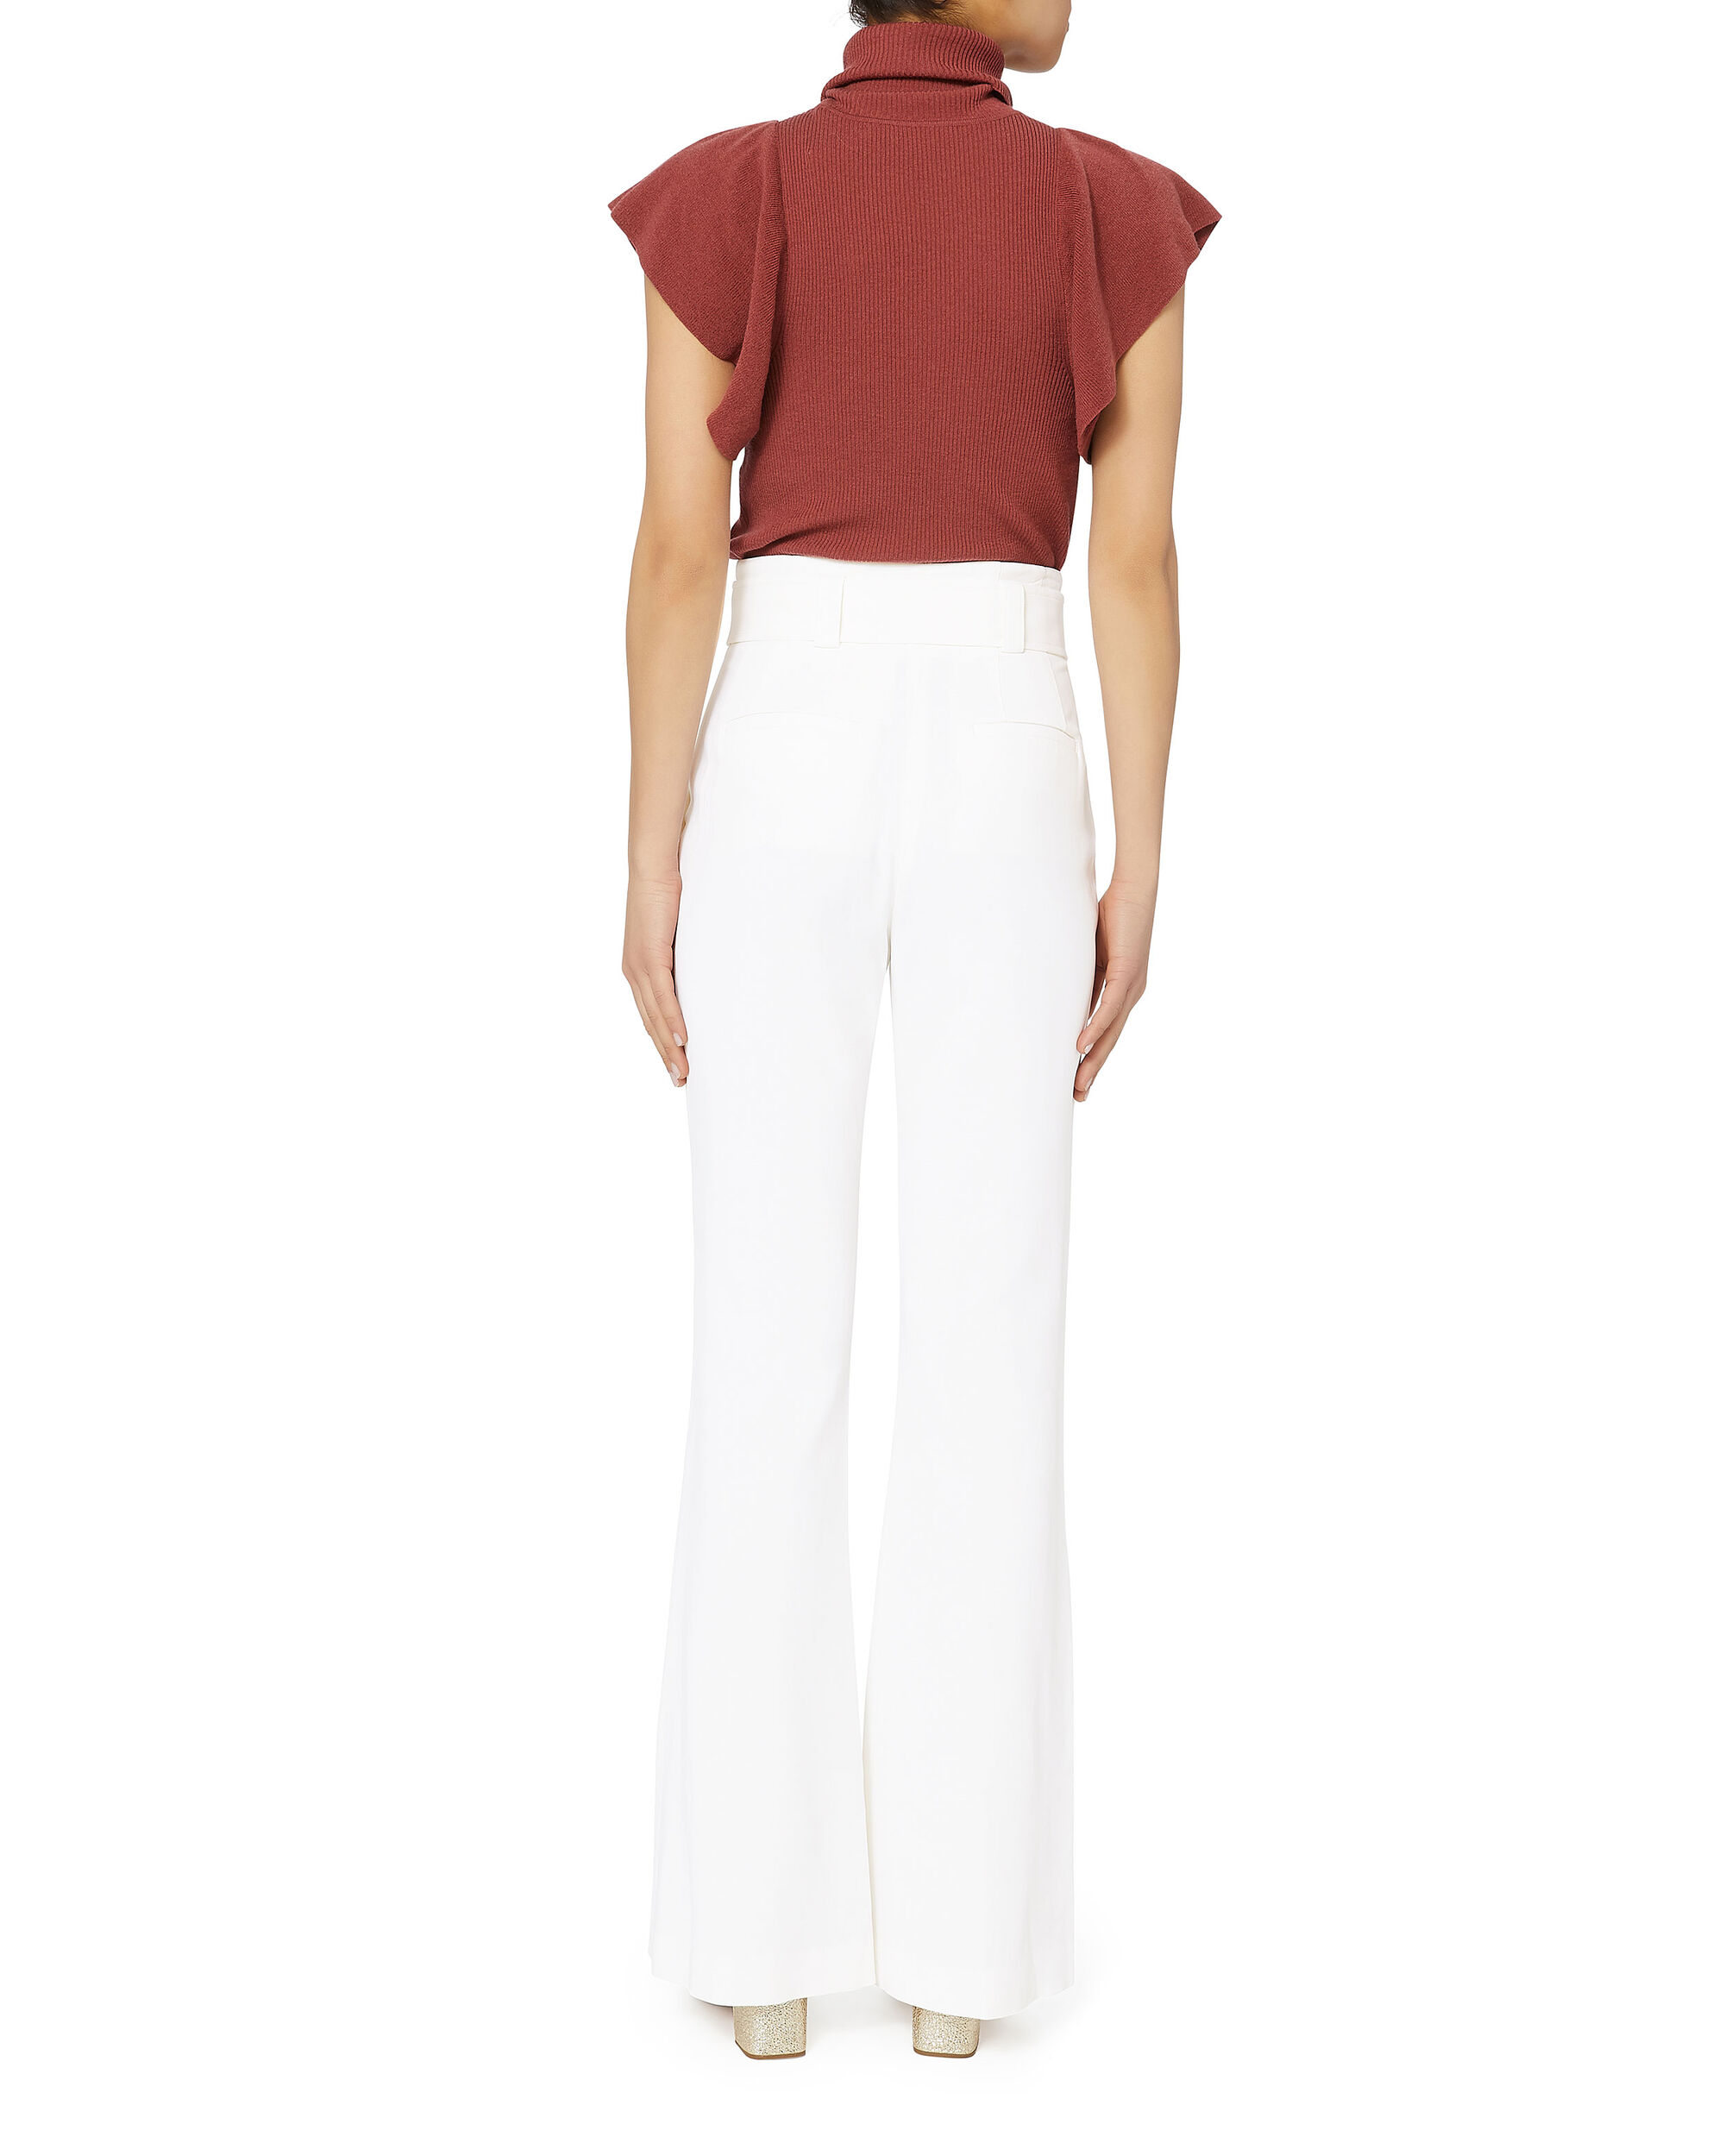 Foster Belted Wide Leg White Pants, WHITE, hi-res